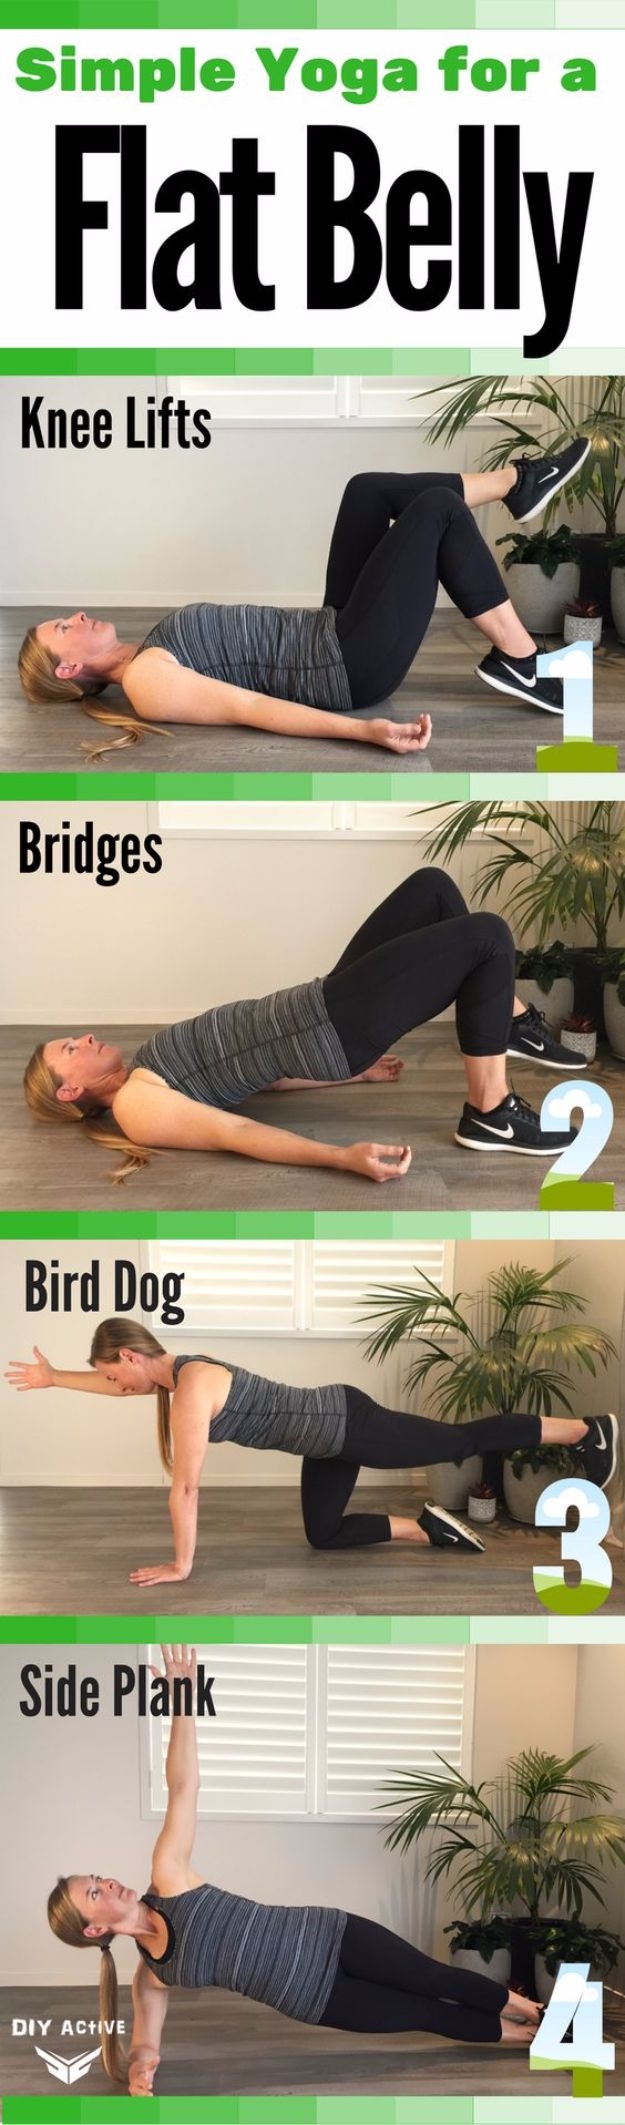 how to get flat tummy at home exercise